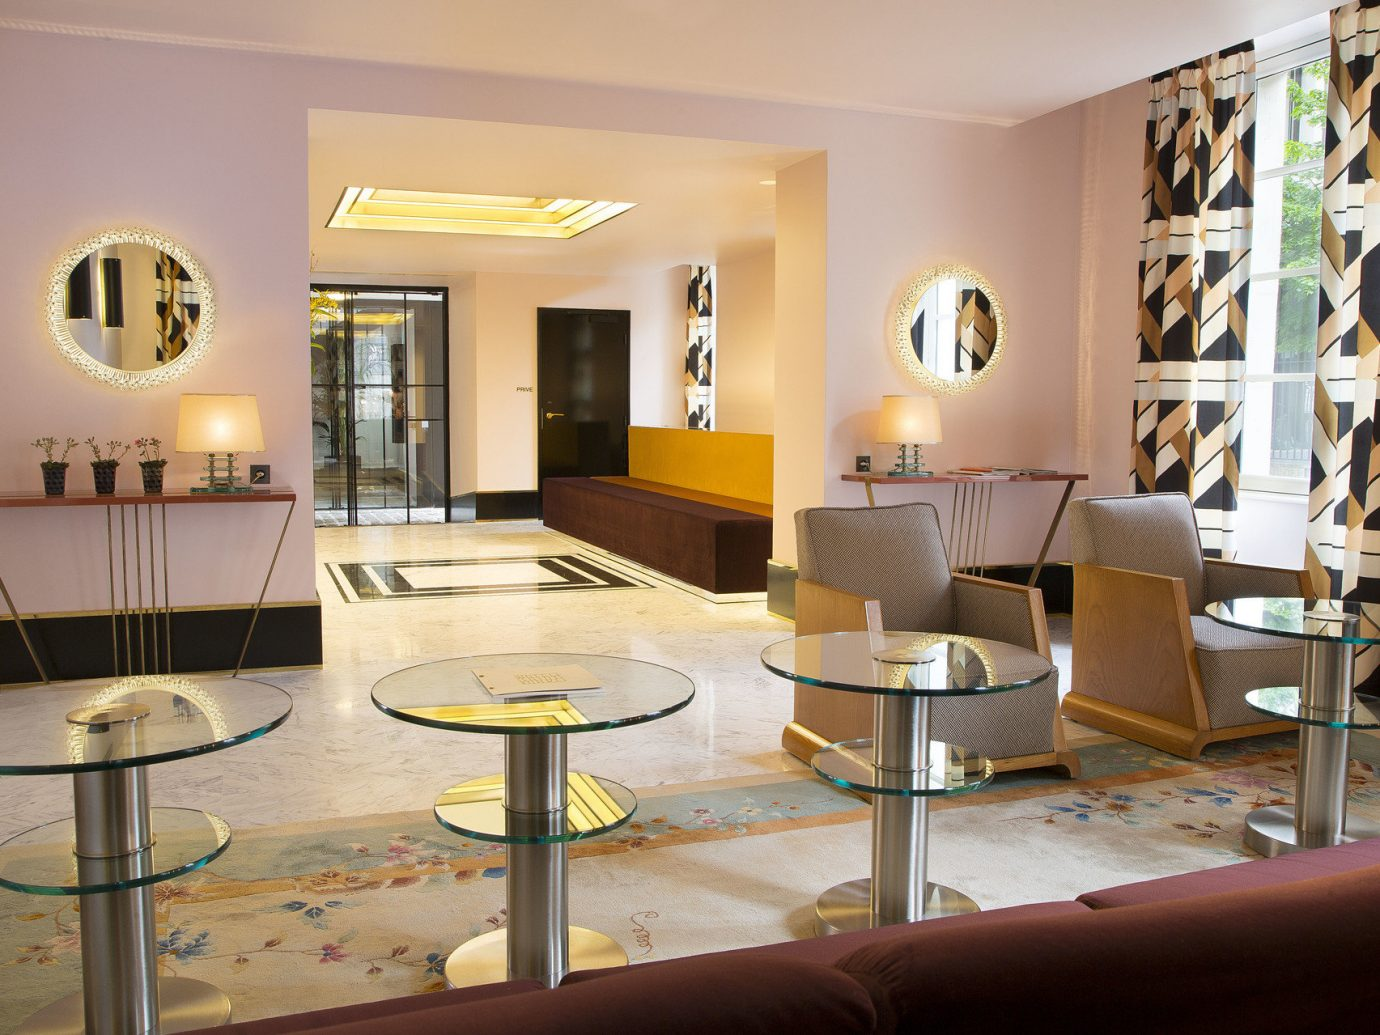 ambient lighting artistic artsy Boutique Boutique Hotels check in chic Hip Hotels interior Lobby Lounge reception desk Style + Design stylish trendy wall indoor ceiling room property dining room living room condominium interior design estate home Design real estate Suite apartment furniture area